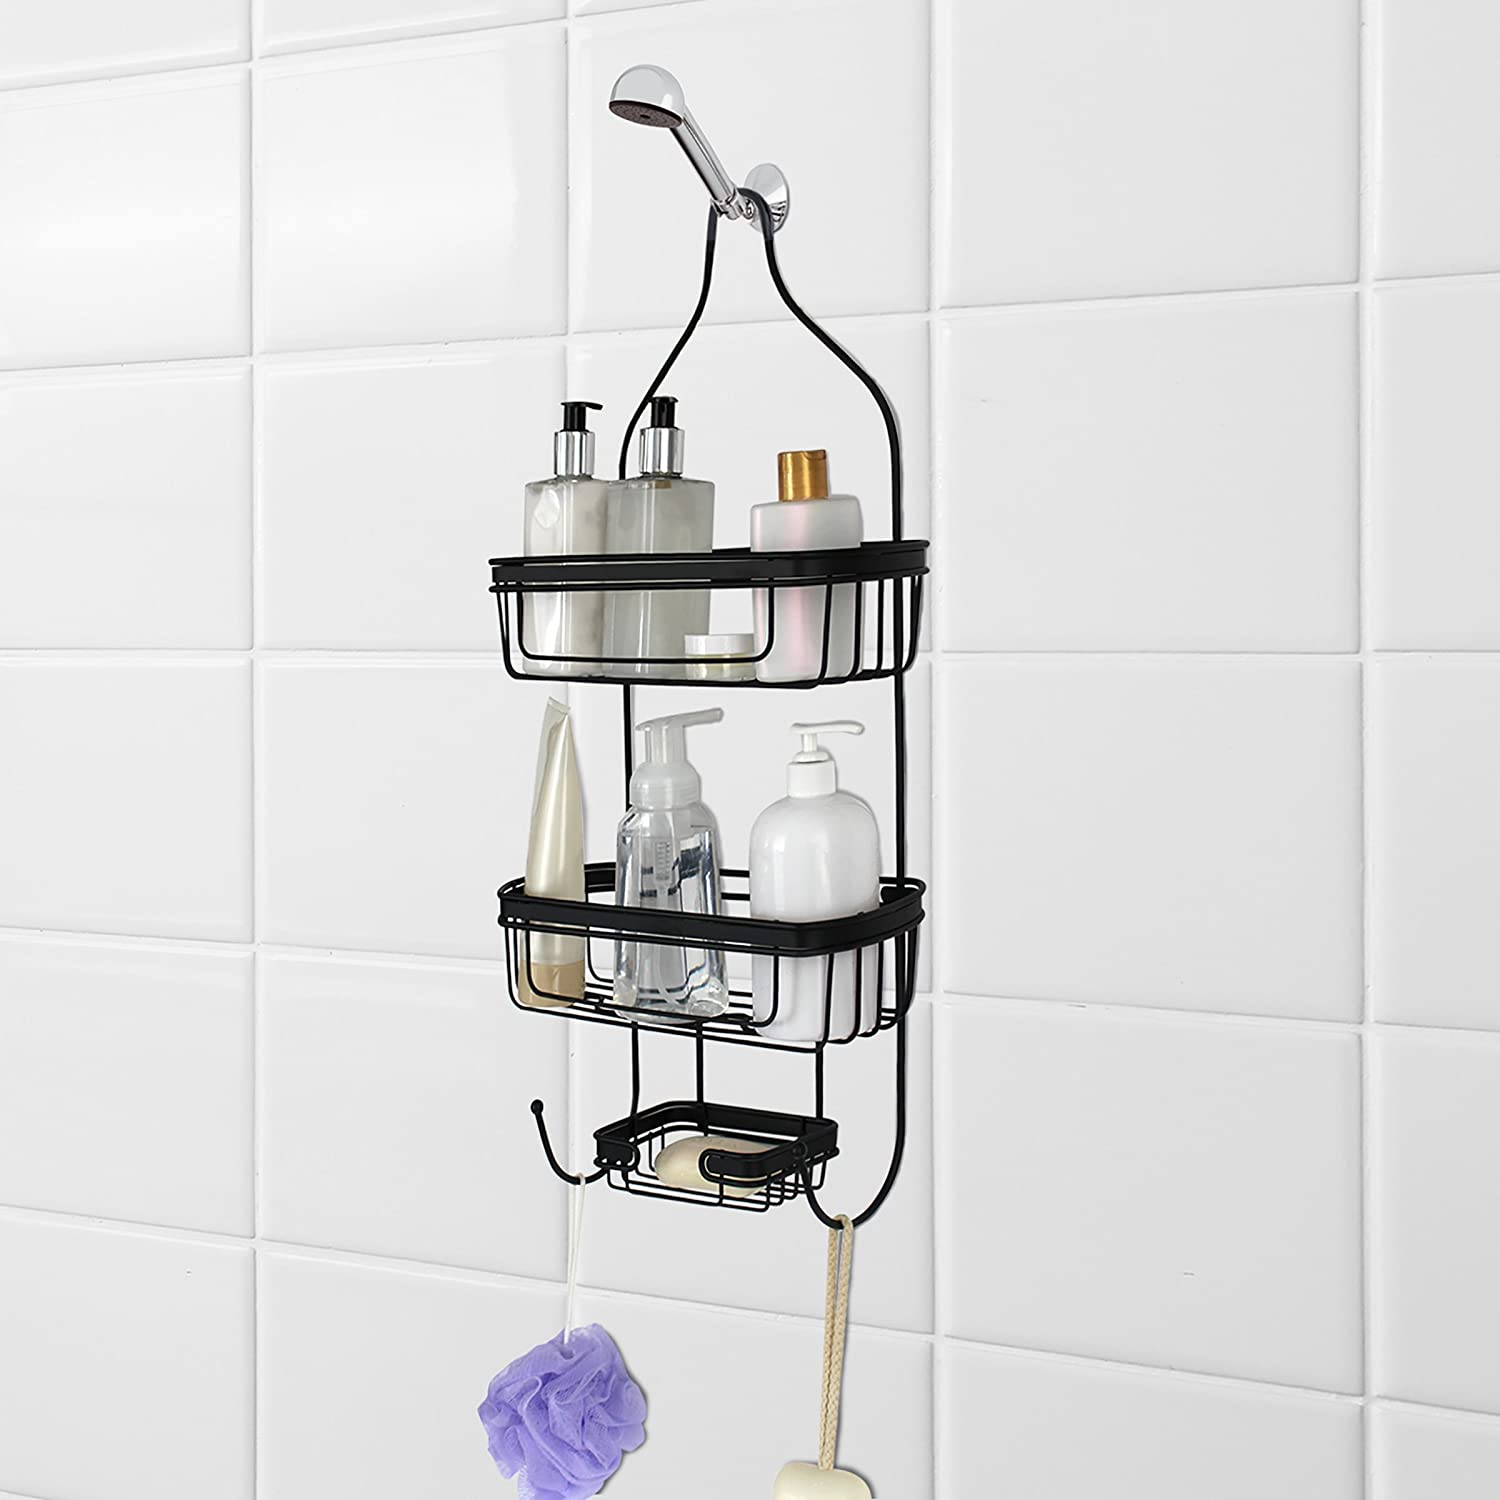 Splash Home Bathroom Door Or Hanging from Shower Head Caddy with Two Basket Organizers Plus Dish, 24 x 15 x 12, Black 092TONE/STBLKSPL